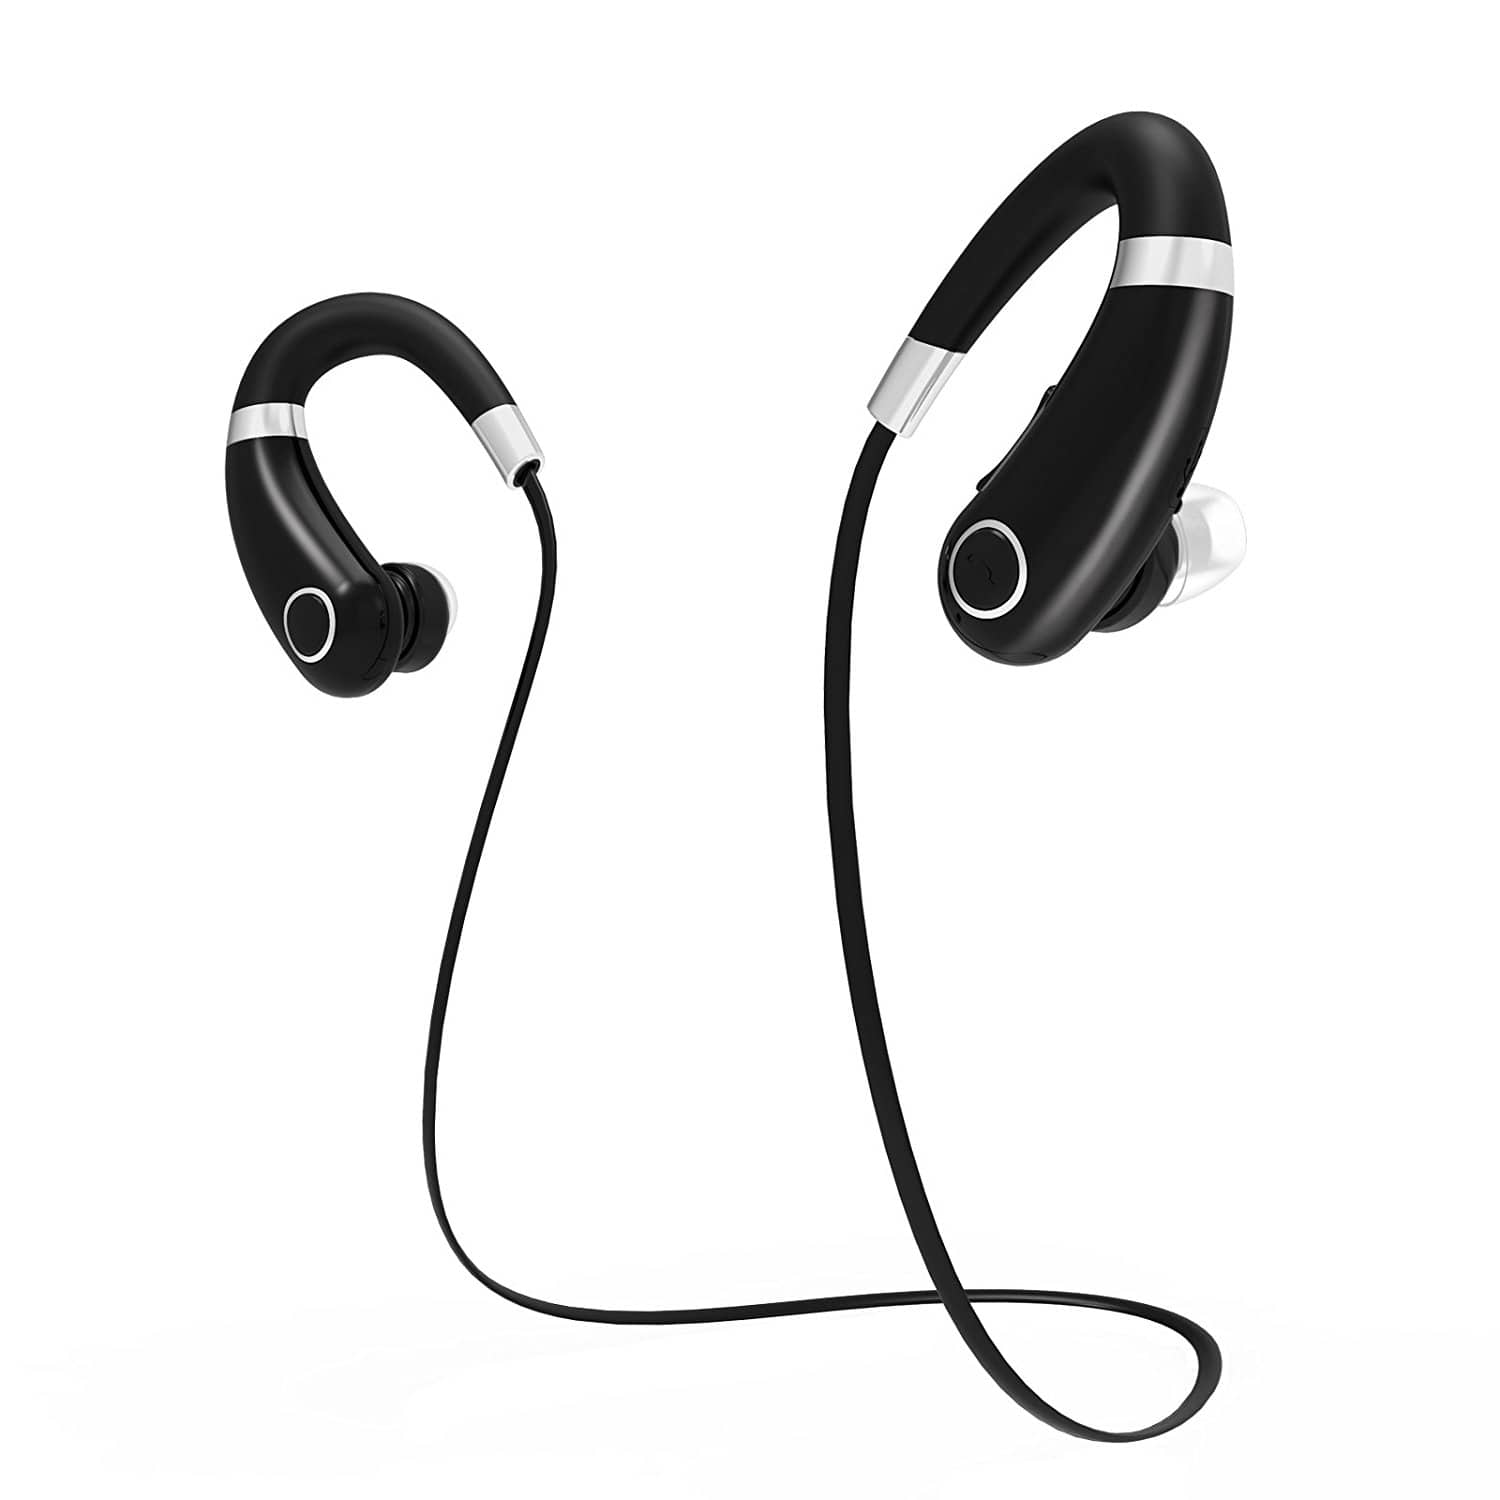 Rymemo Bluetooth Earphone with Enhanced Bass, Noise Reduction, Ergonomic Design for $9.83 AC @Amazon